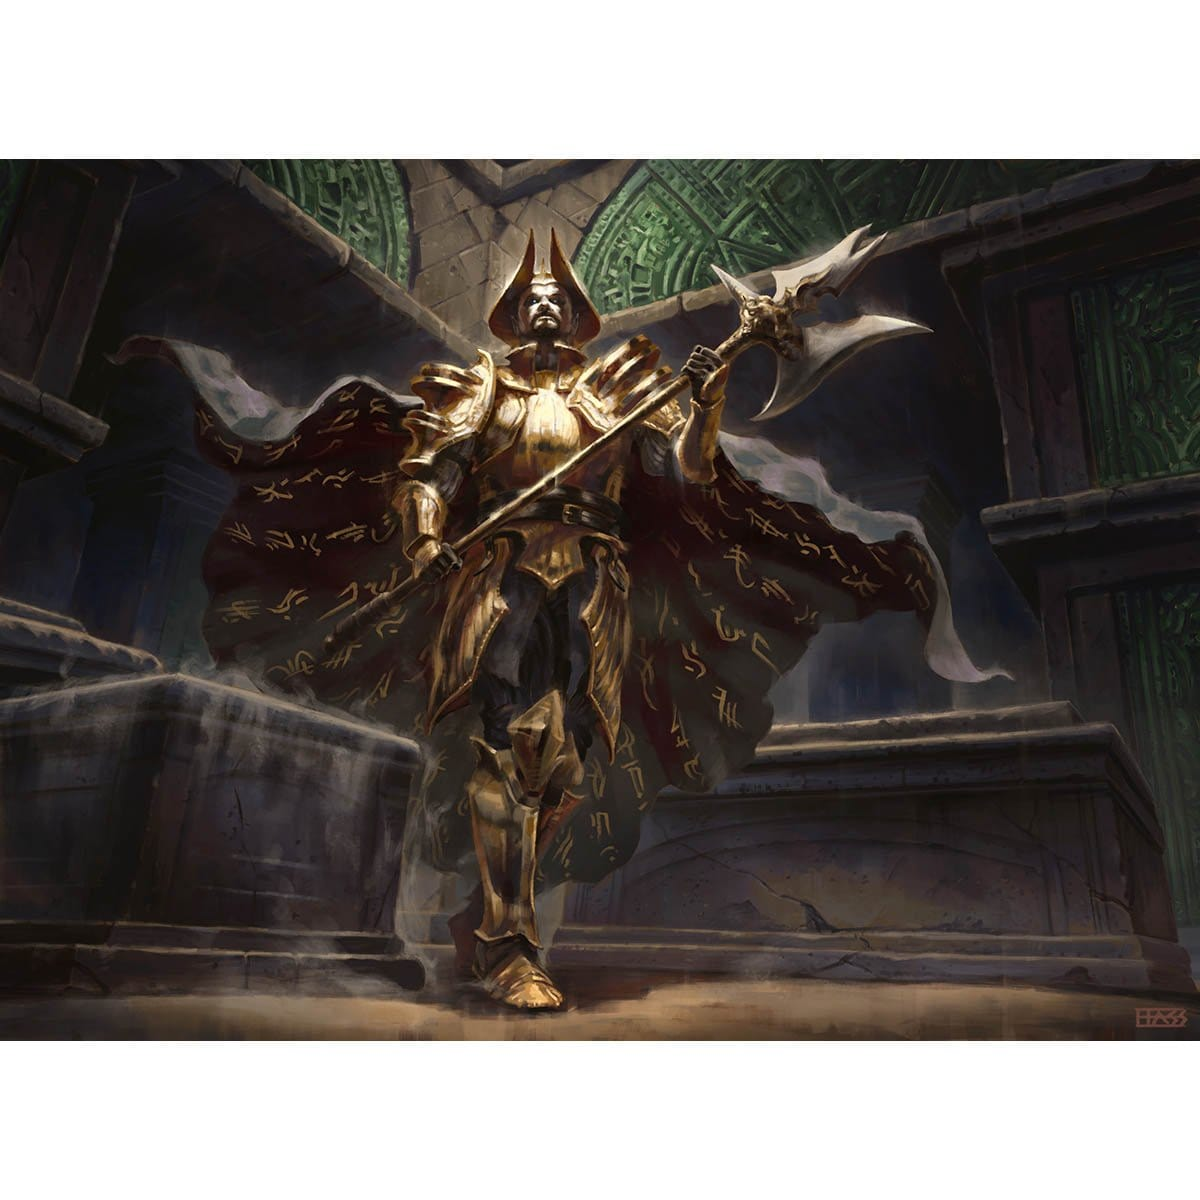 Champion of Dusk Print - Print - Original Magic Art - Accessories for Magic the Gathering and other card games